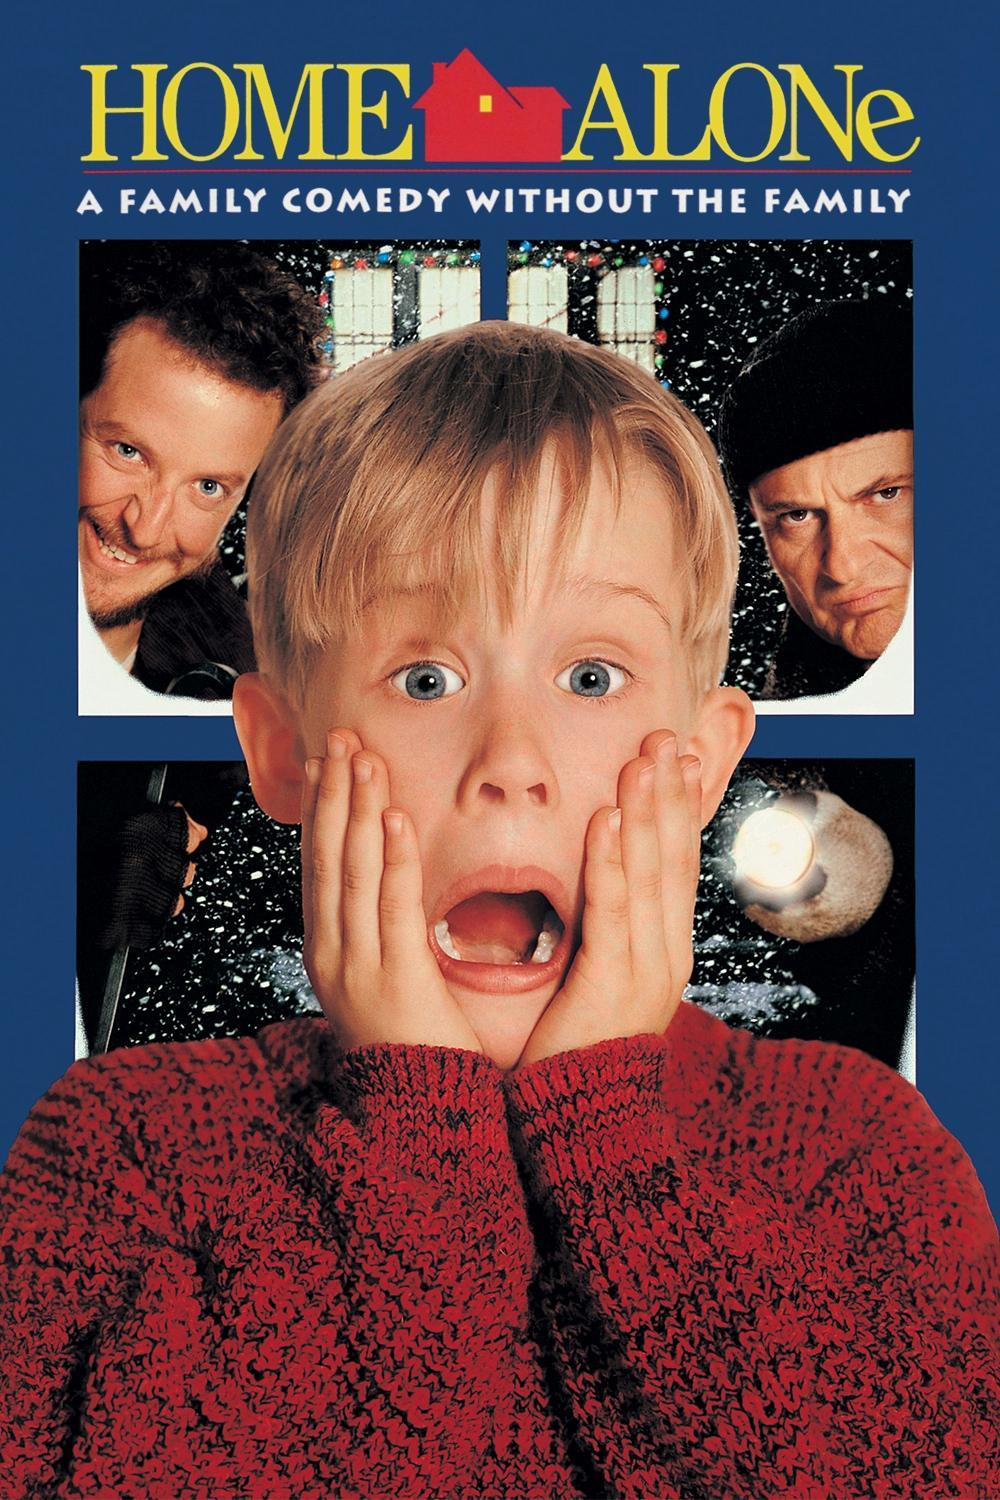 so, this is the first question. what would you do, if you were HOME ALONE for a week without your parents!